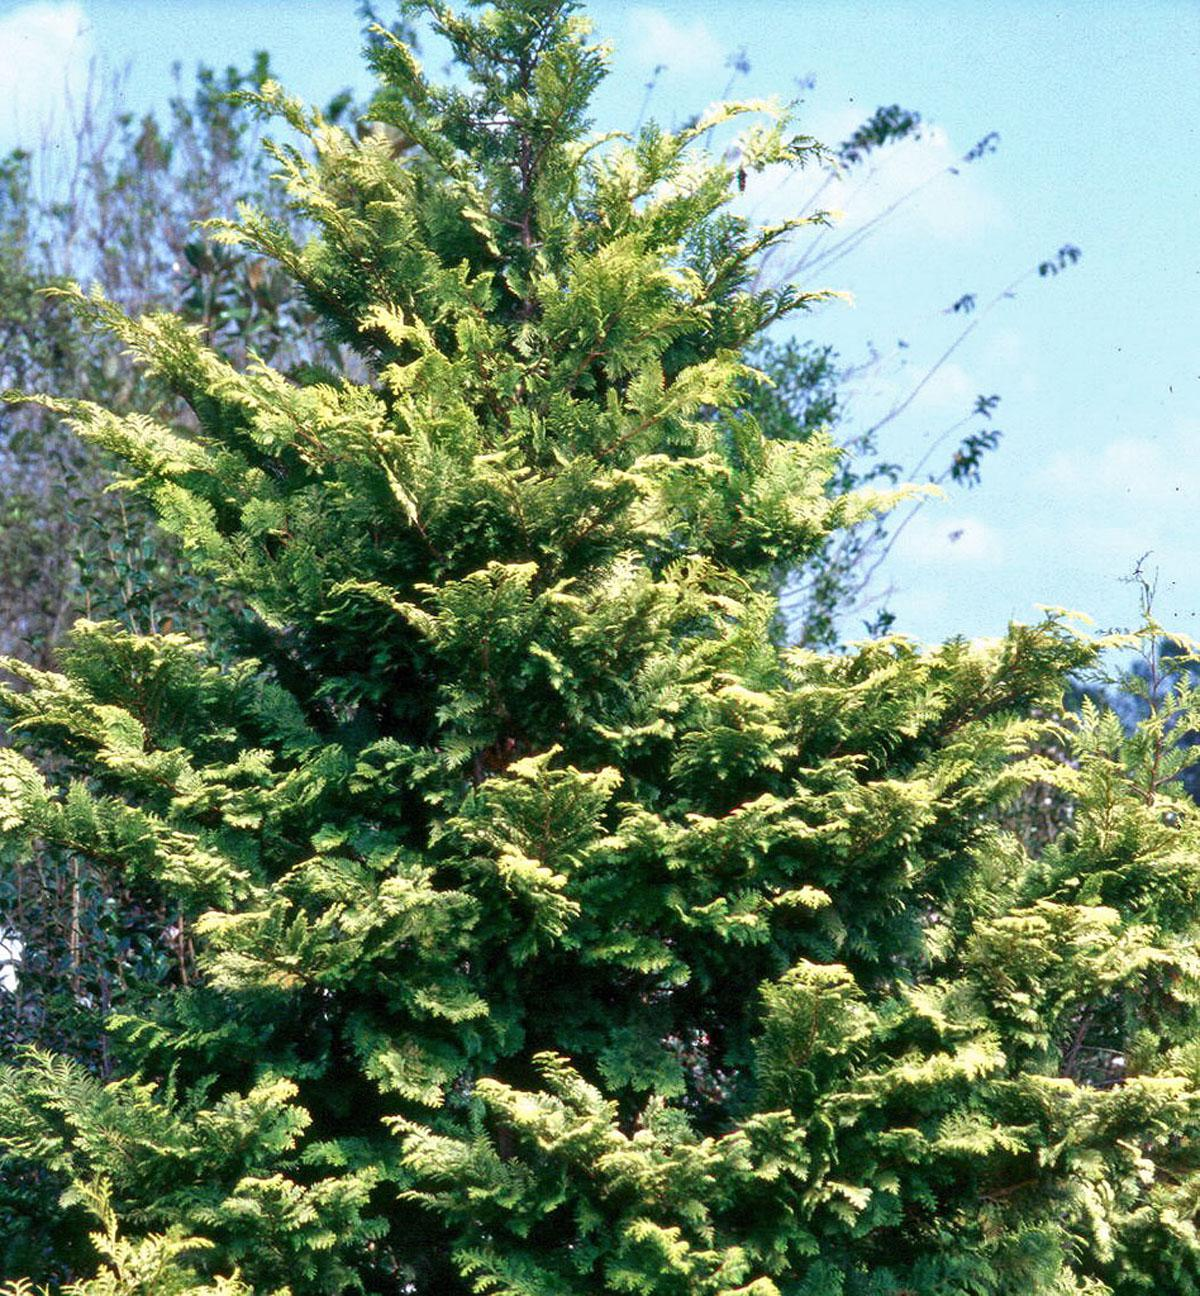 The Crippsii can grow to around 20 feet tall, but most are in the 10-foot range. The golden-yellow foliage really looks incredible during cold, dreary winter weather.